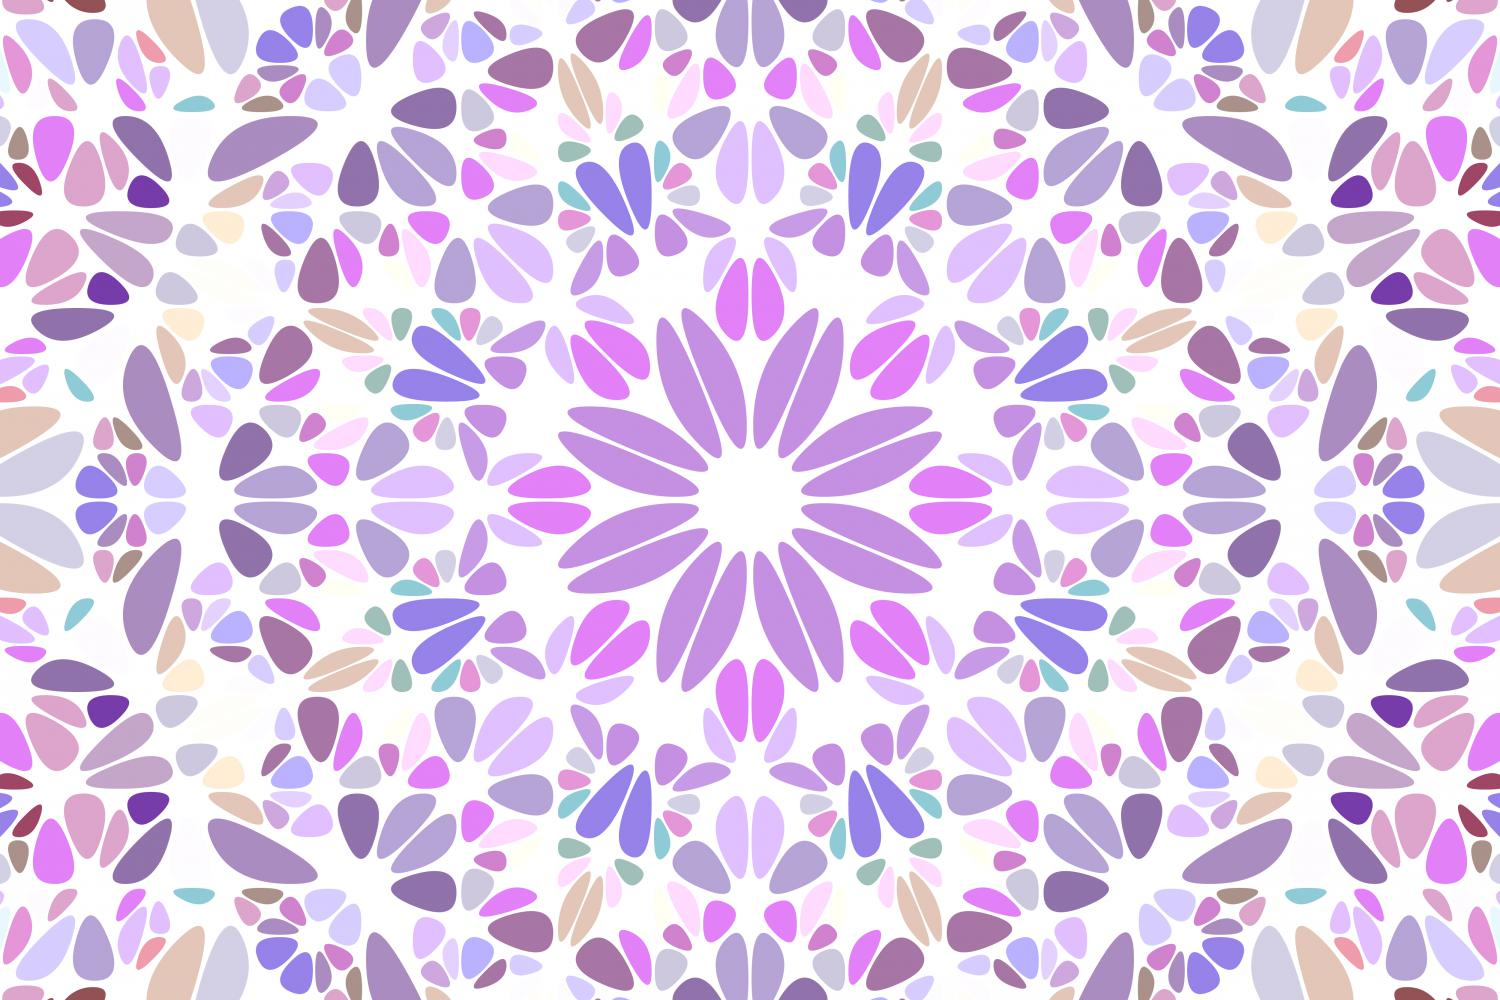 48 Floral Mandala Backgrounds example image 20